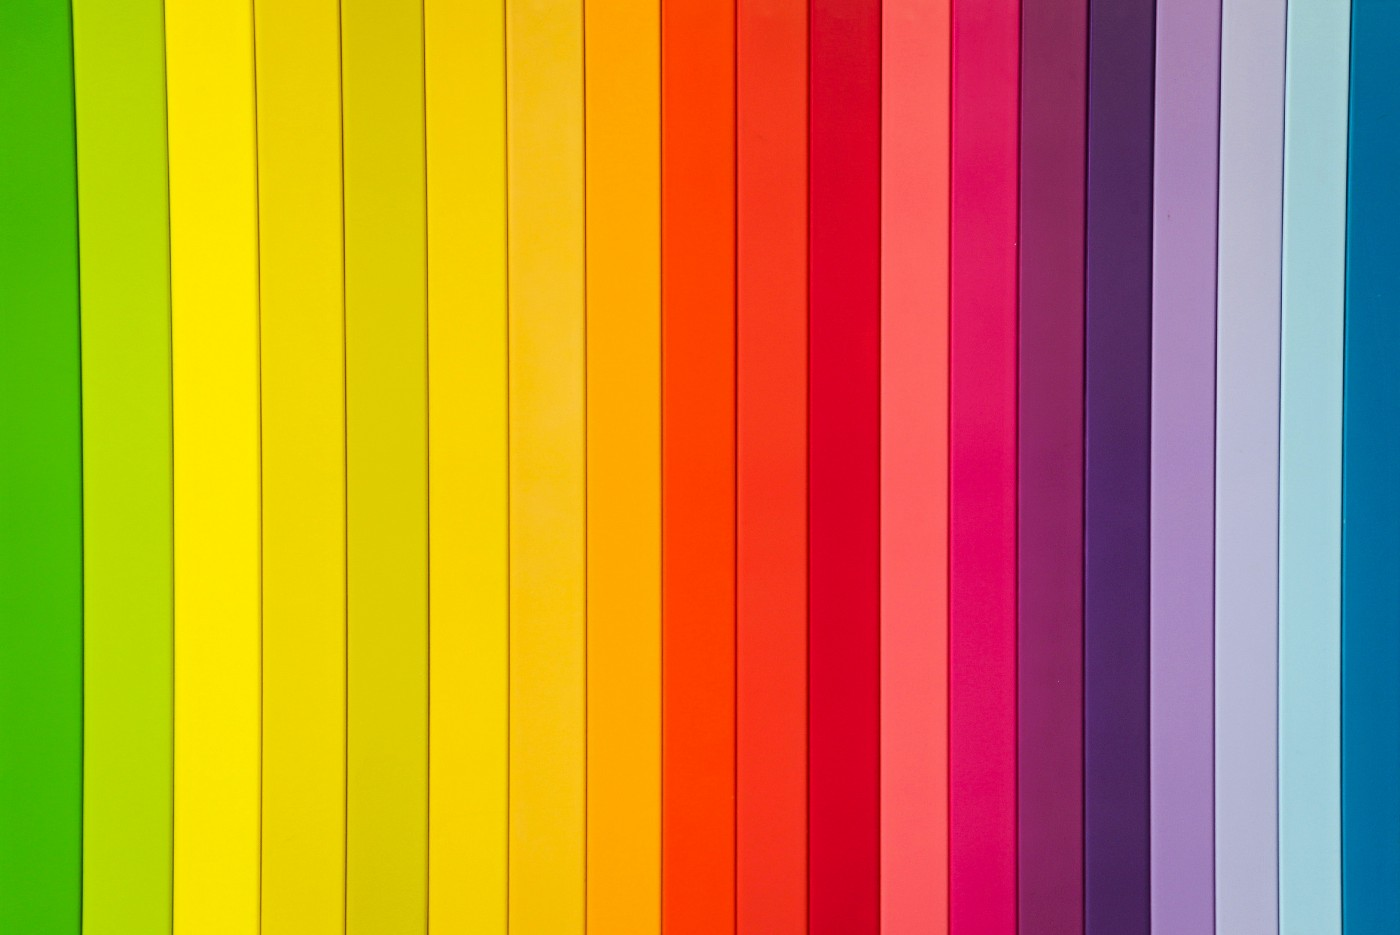 Strips of colour